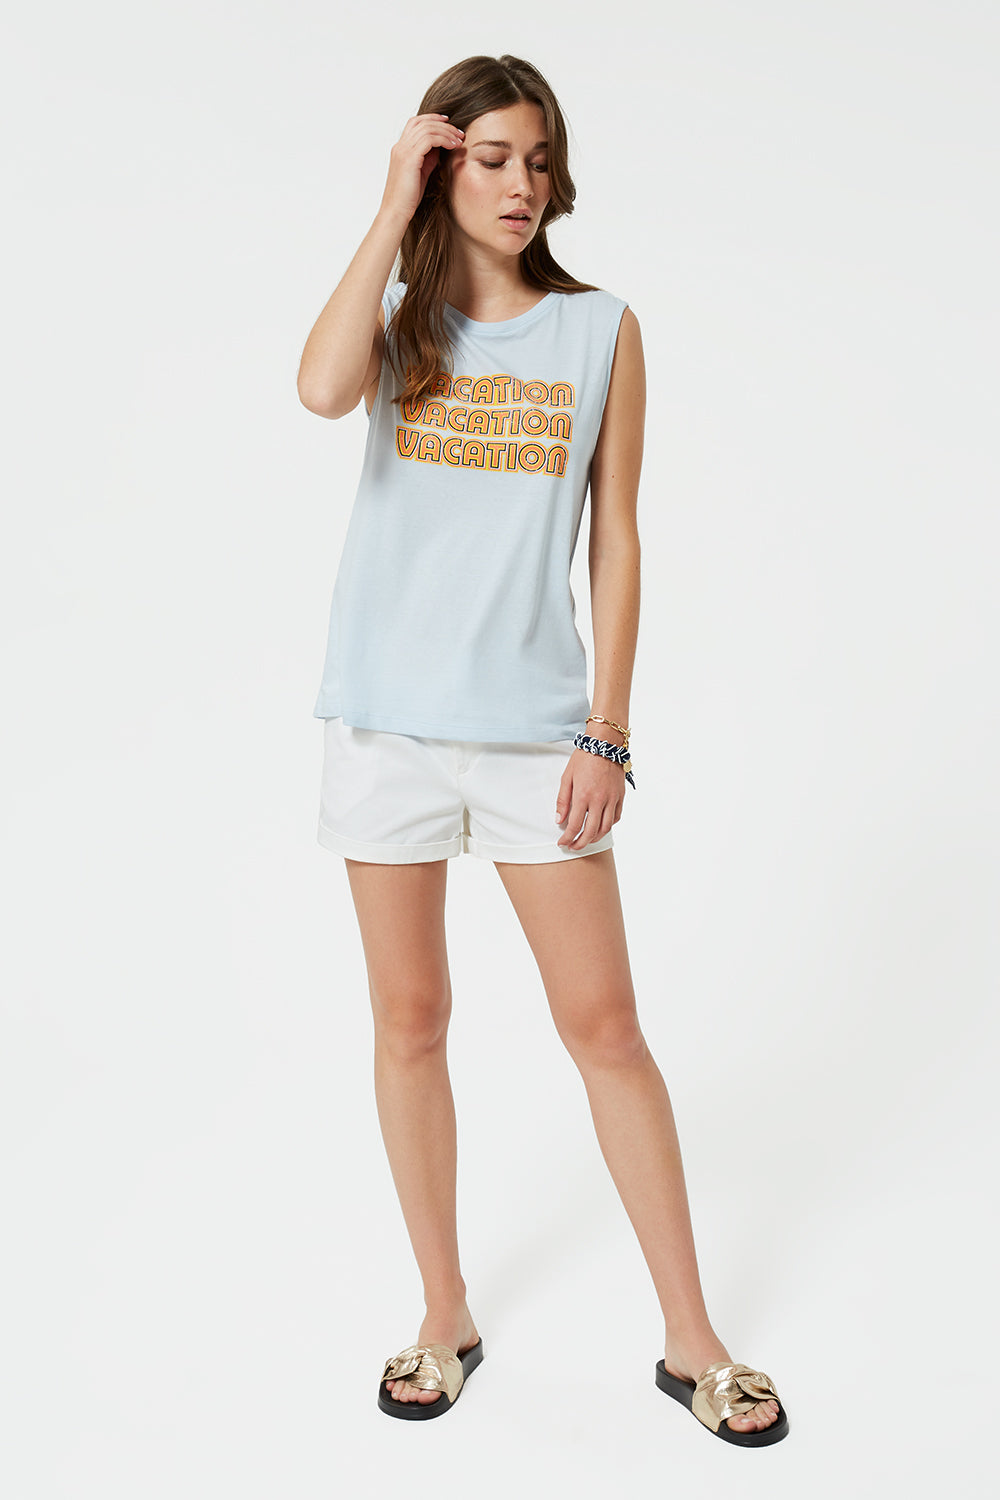 Vacation Muscle Tee